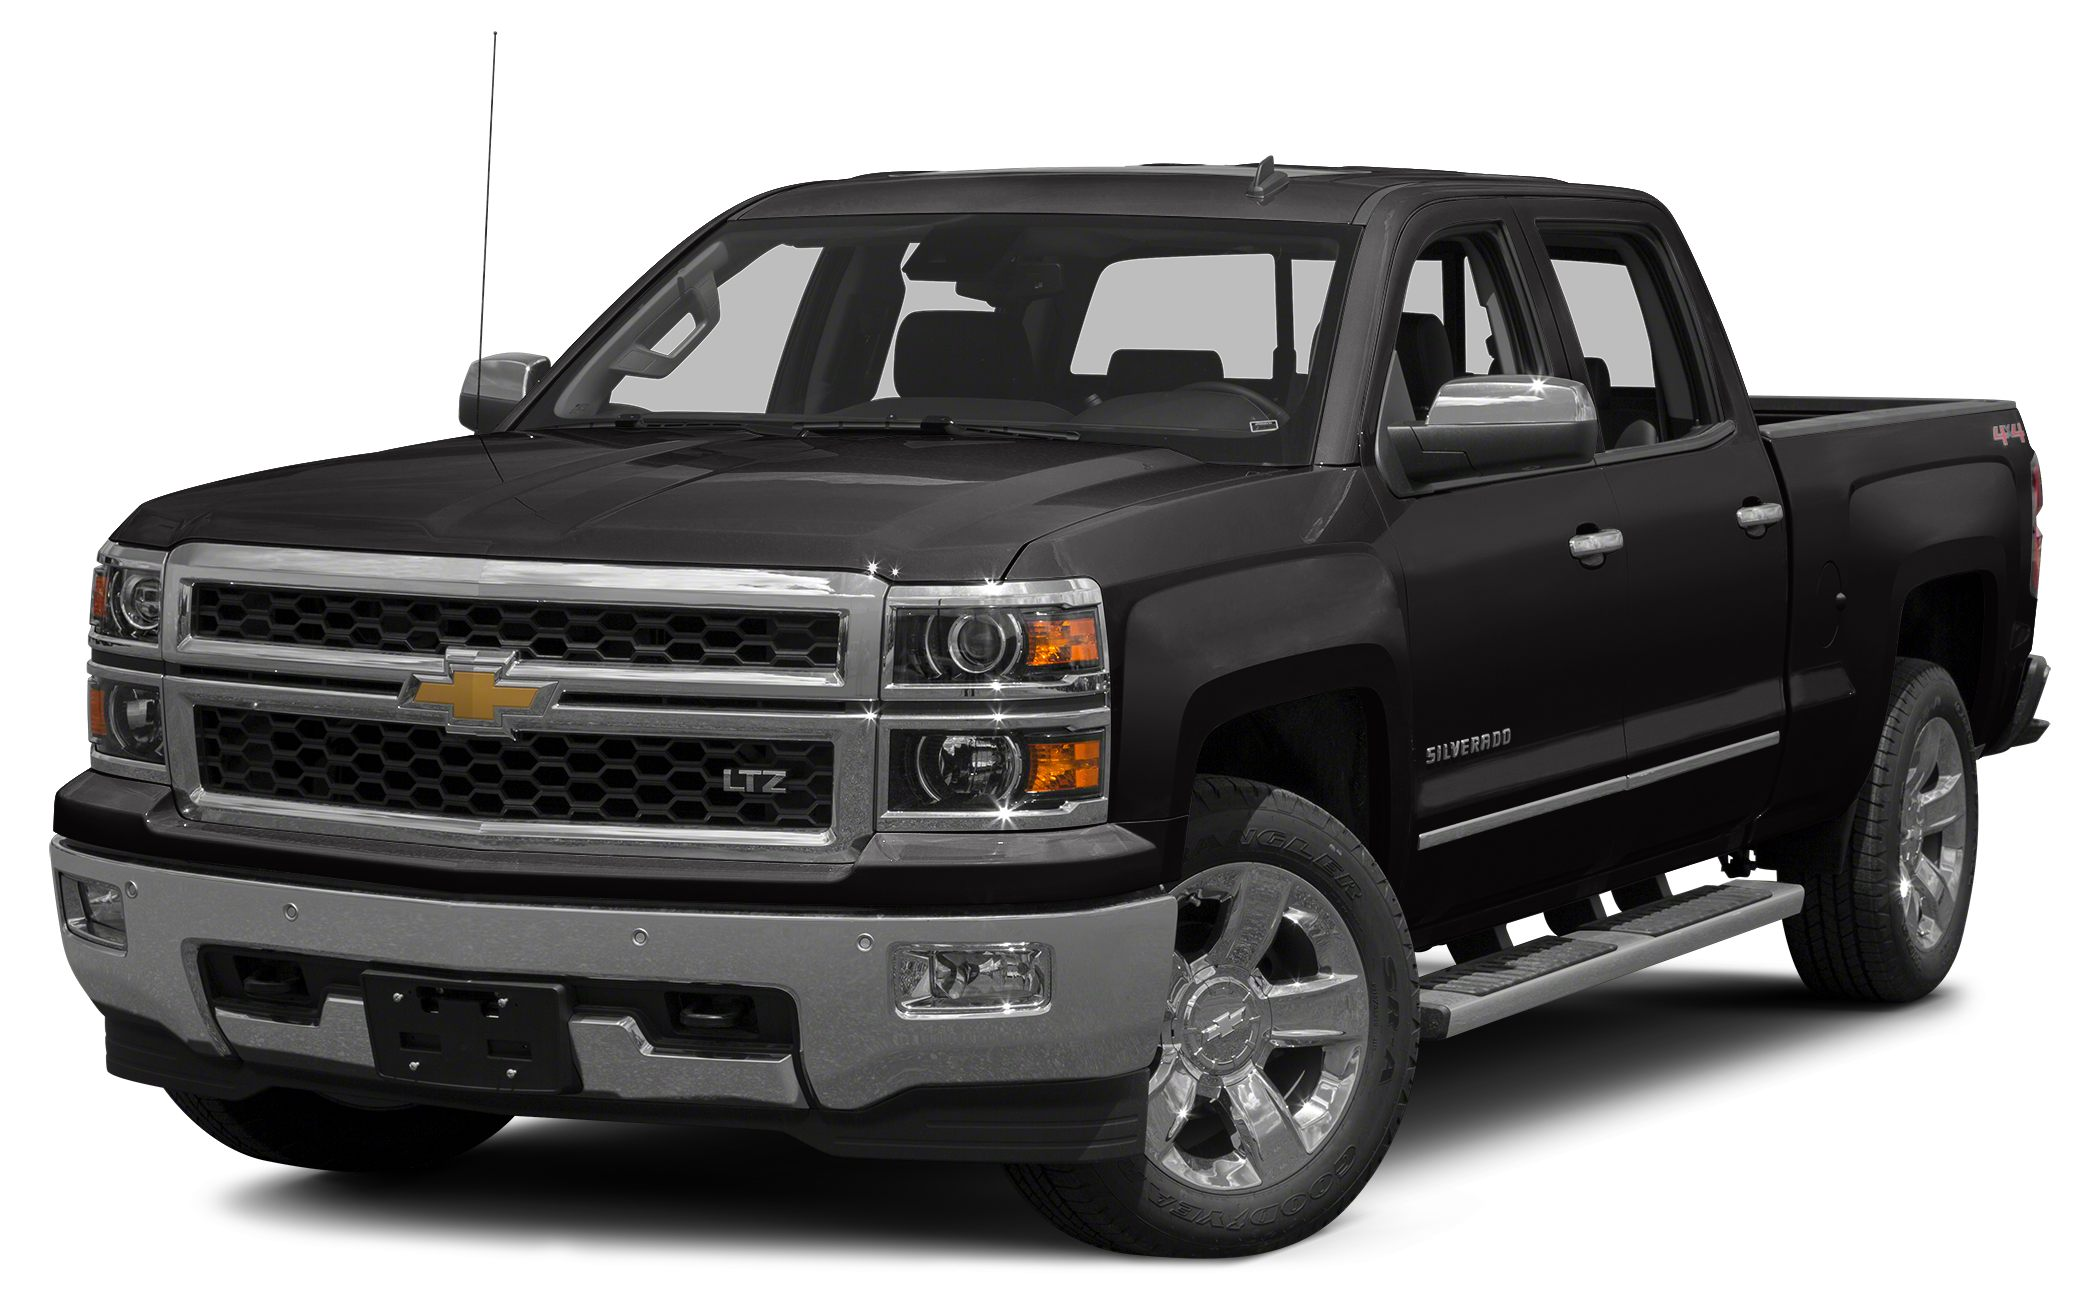 2015 Chevrolet Silverado 1500 1LT Sleek Black Short Bed Want to stretch your purchasing power W